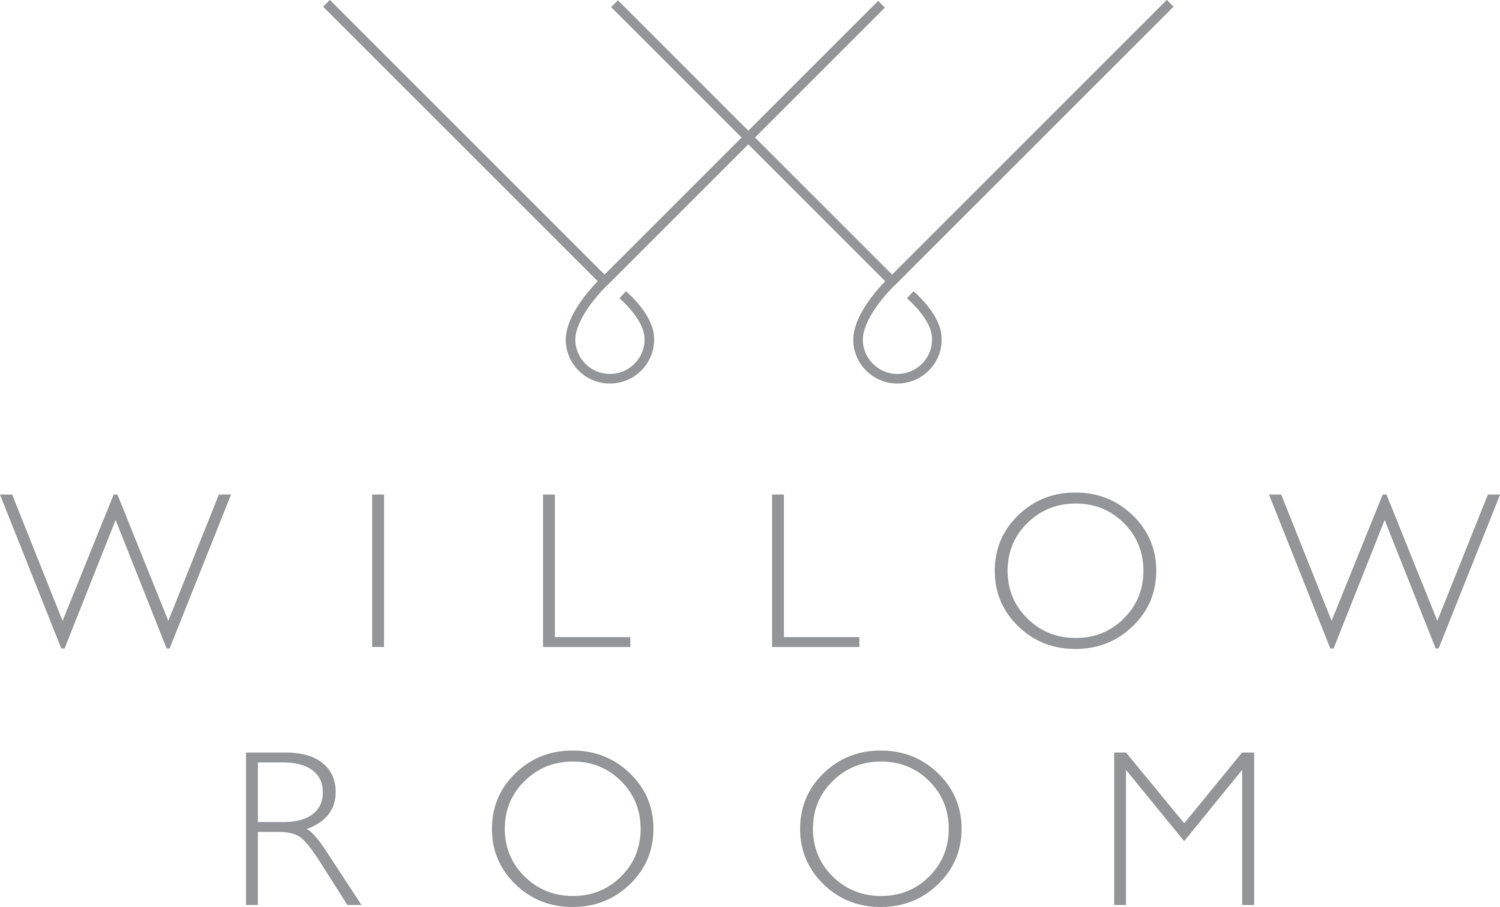 Willow Room